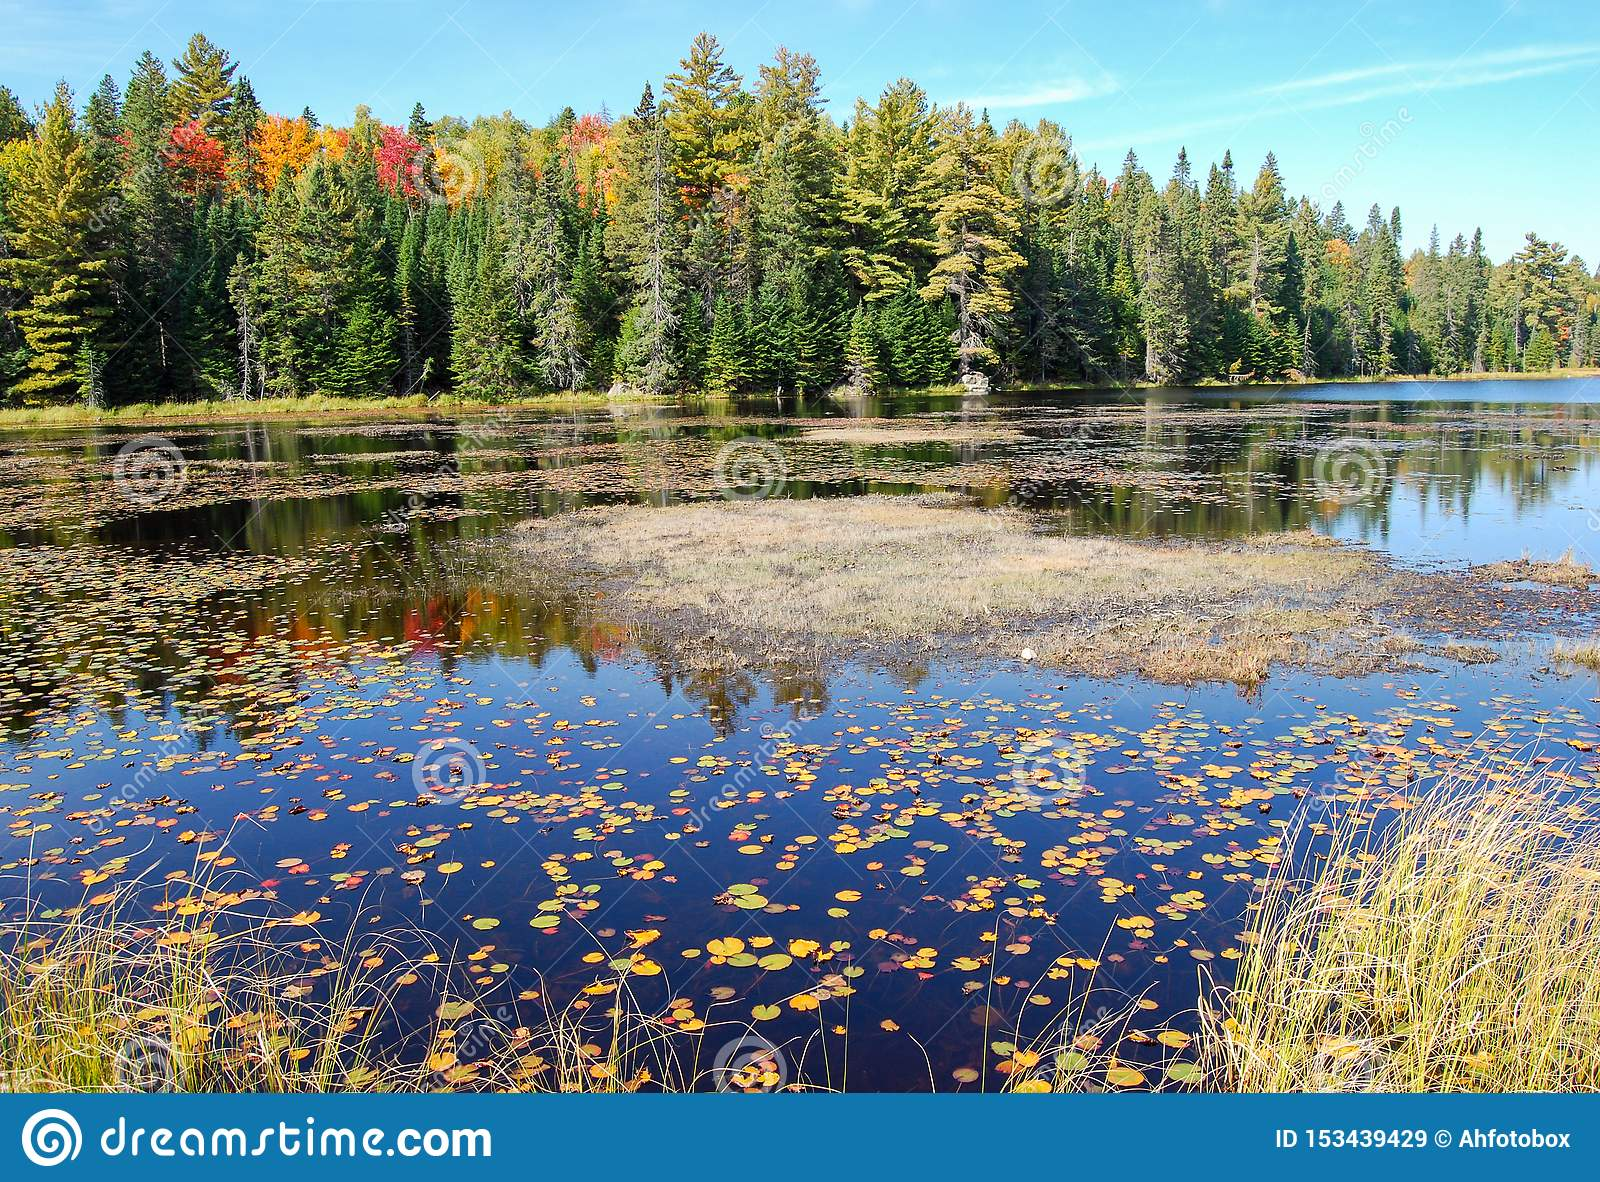 Indian summer at a lake in Algonquin Provincial Park near Toronto in autumn, Canada